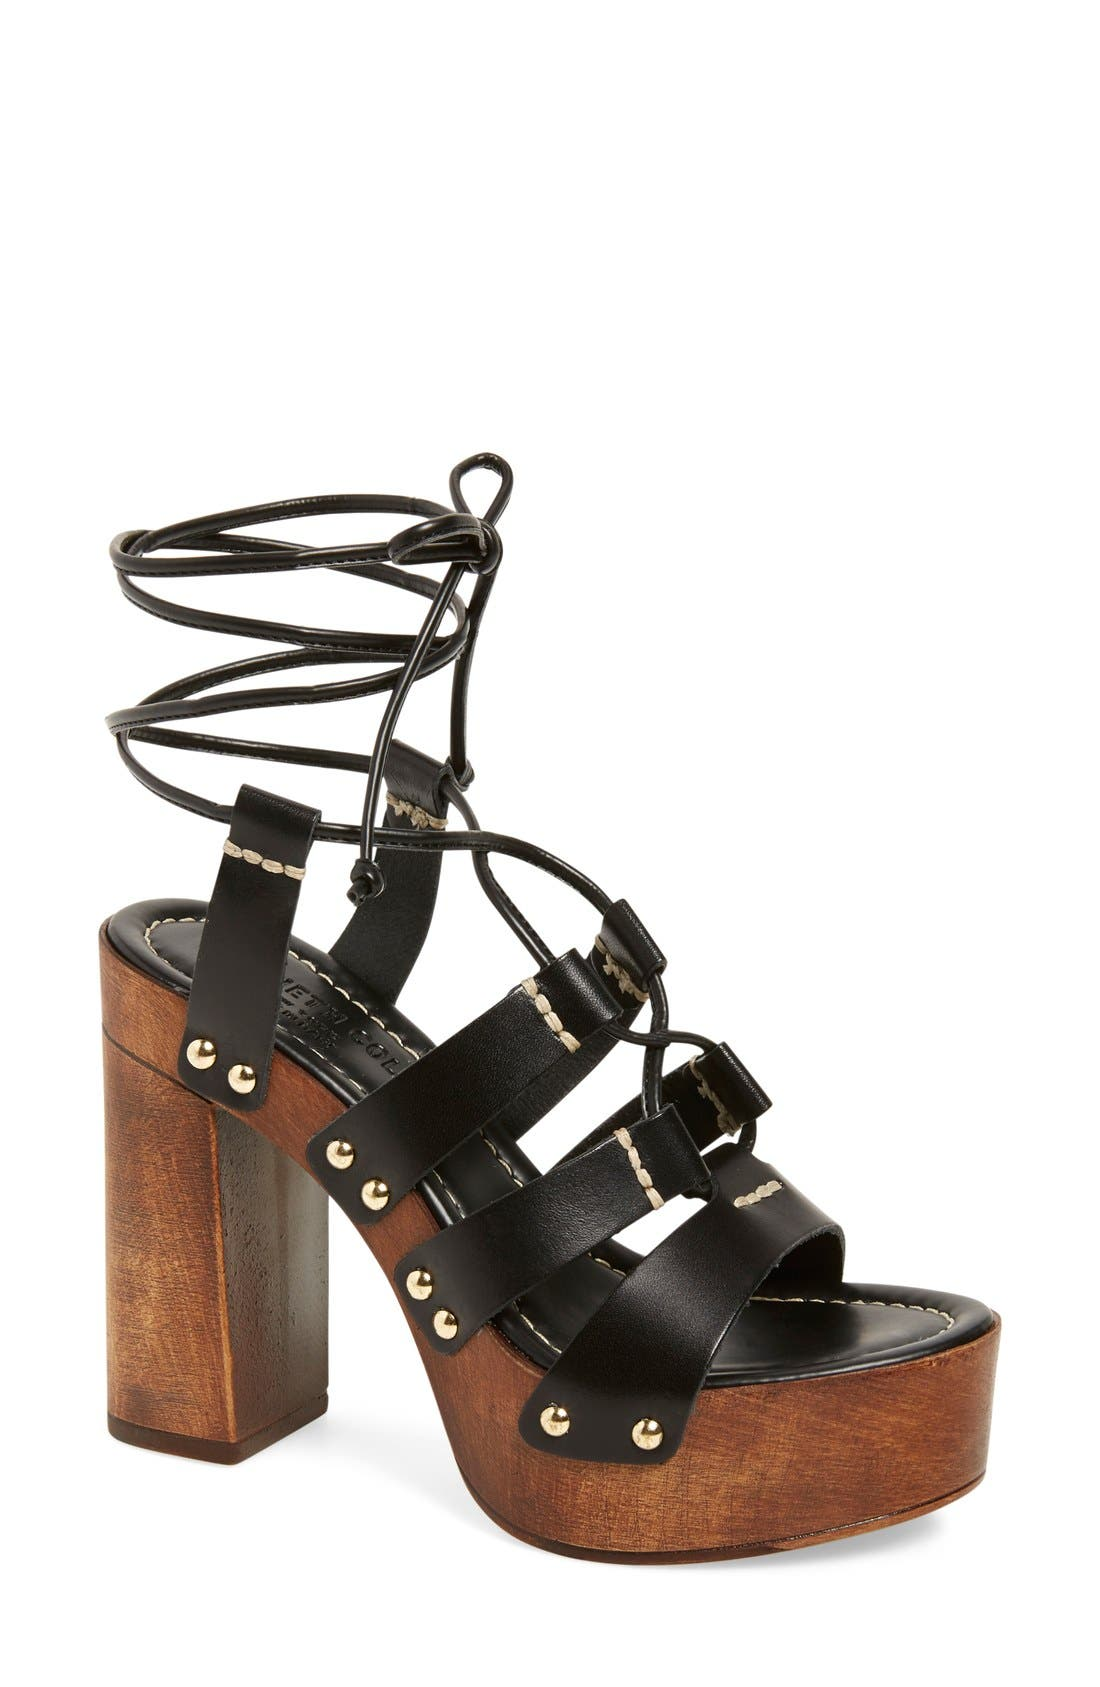 Alternate Image 1 Selected - Kenneth Cole New York 'Kenzie' Lace-Up Sandal (Women)